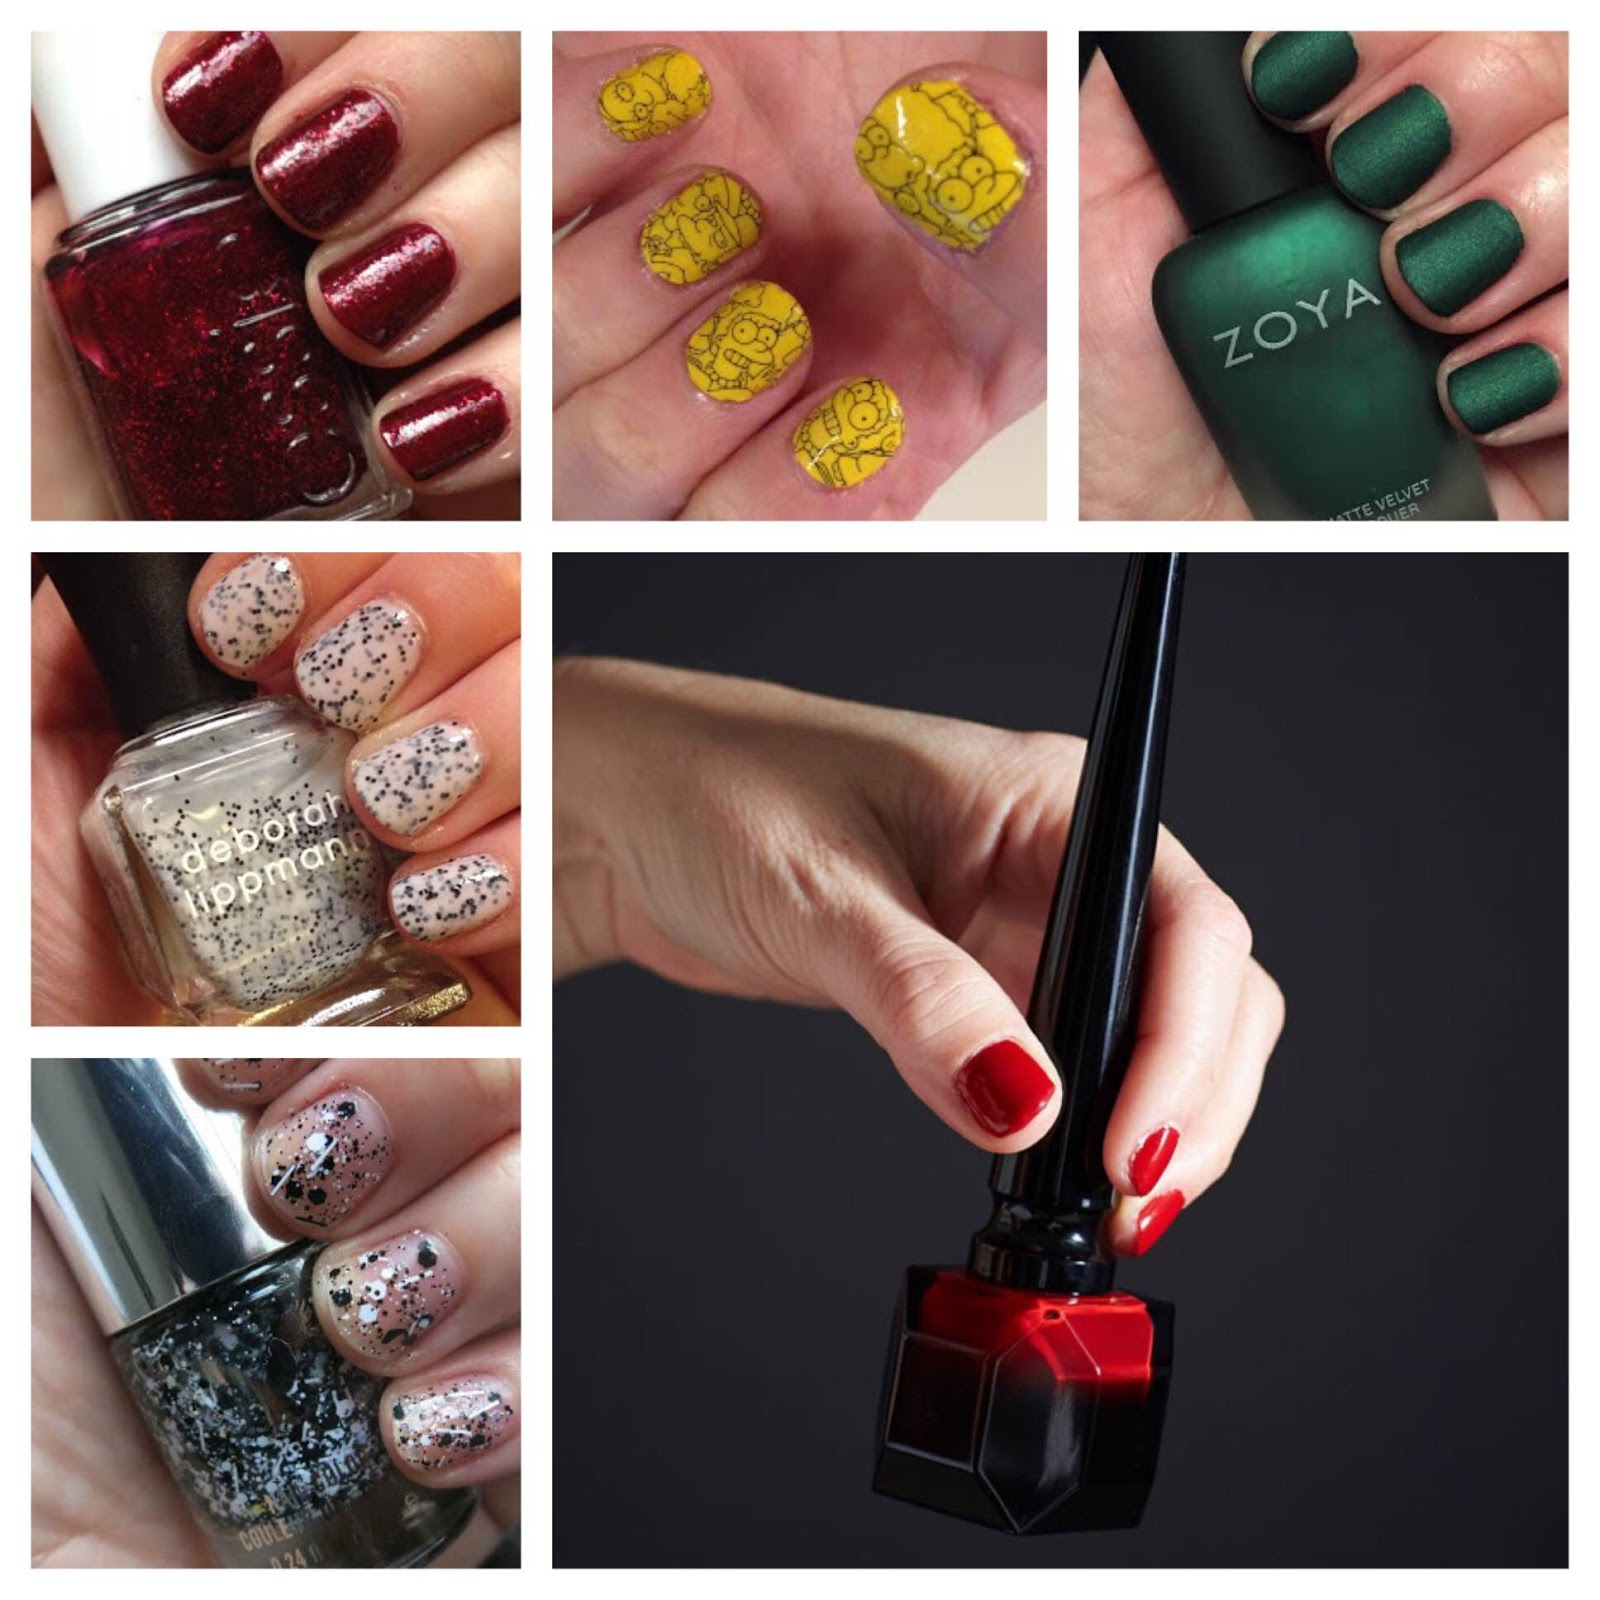 The Beauty of Life: #ManiMonday: My 2014 in Nails